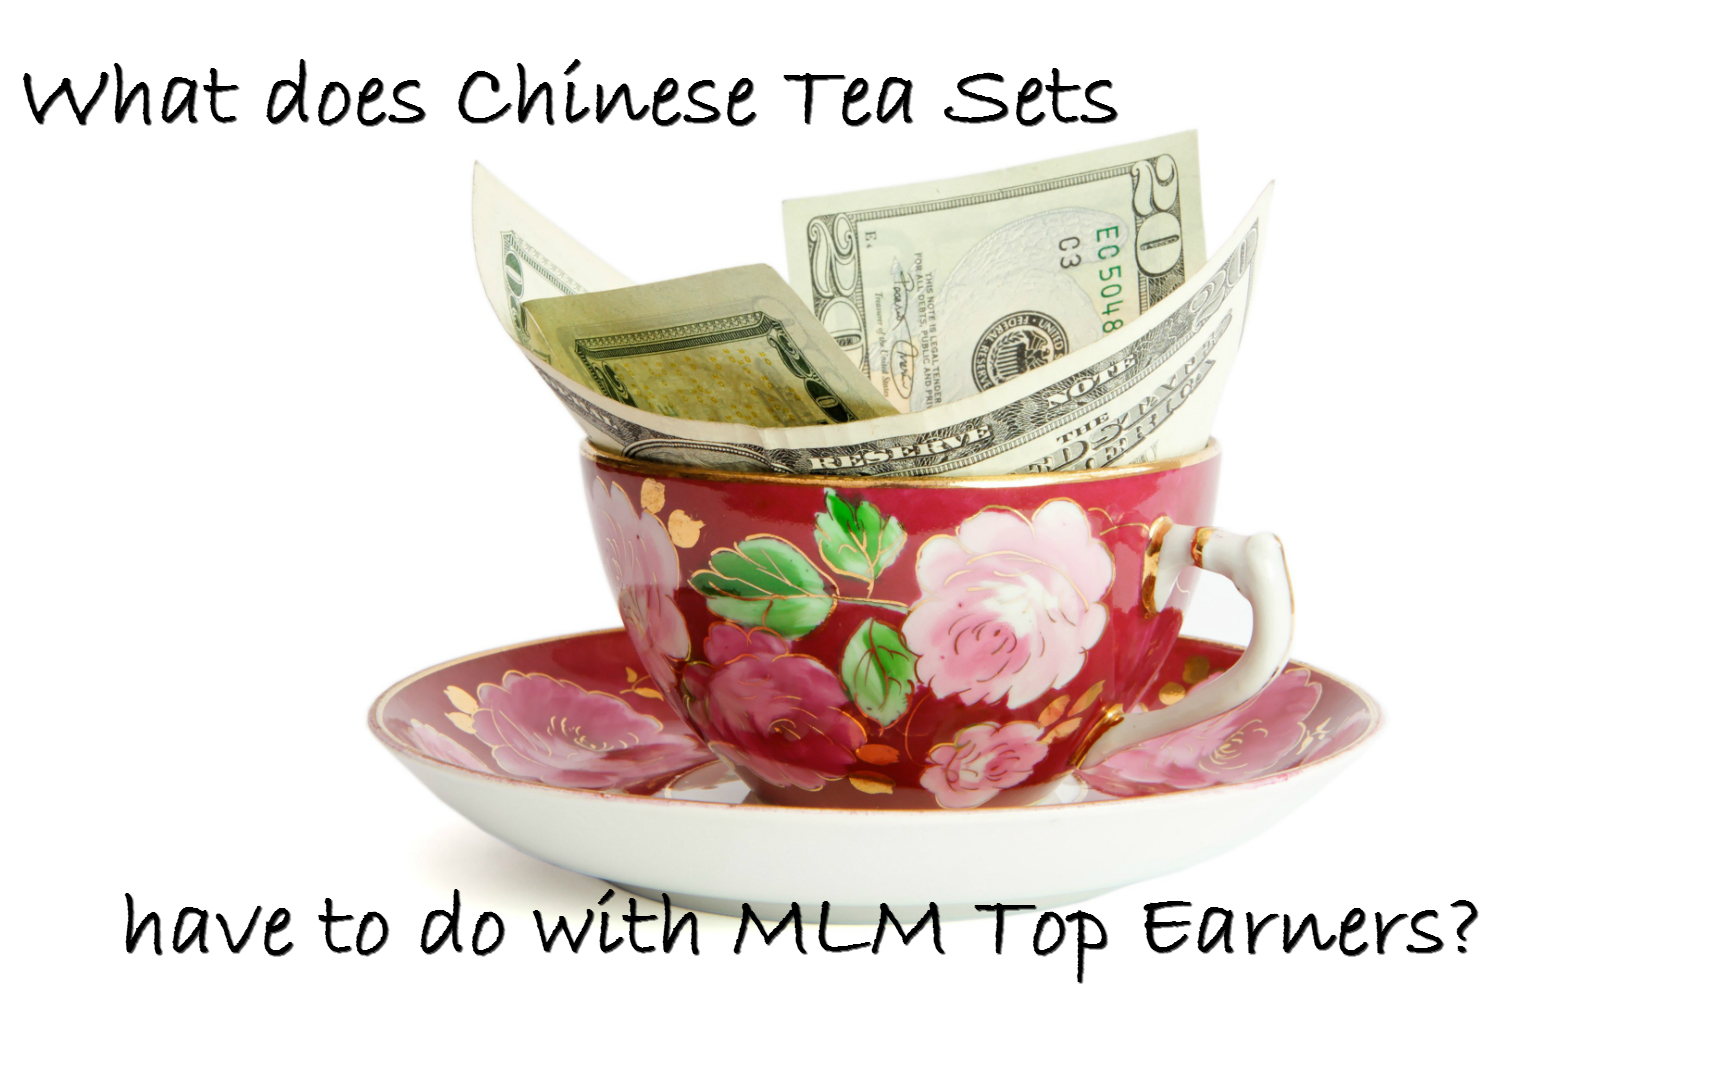 Chinese Tea Sets and MLM Top Earners